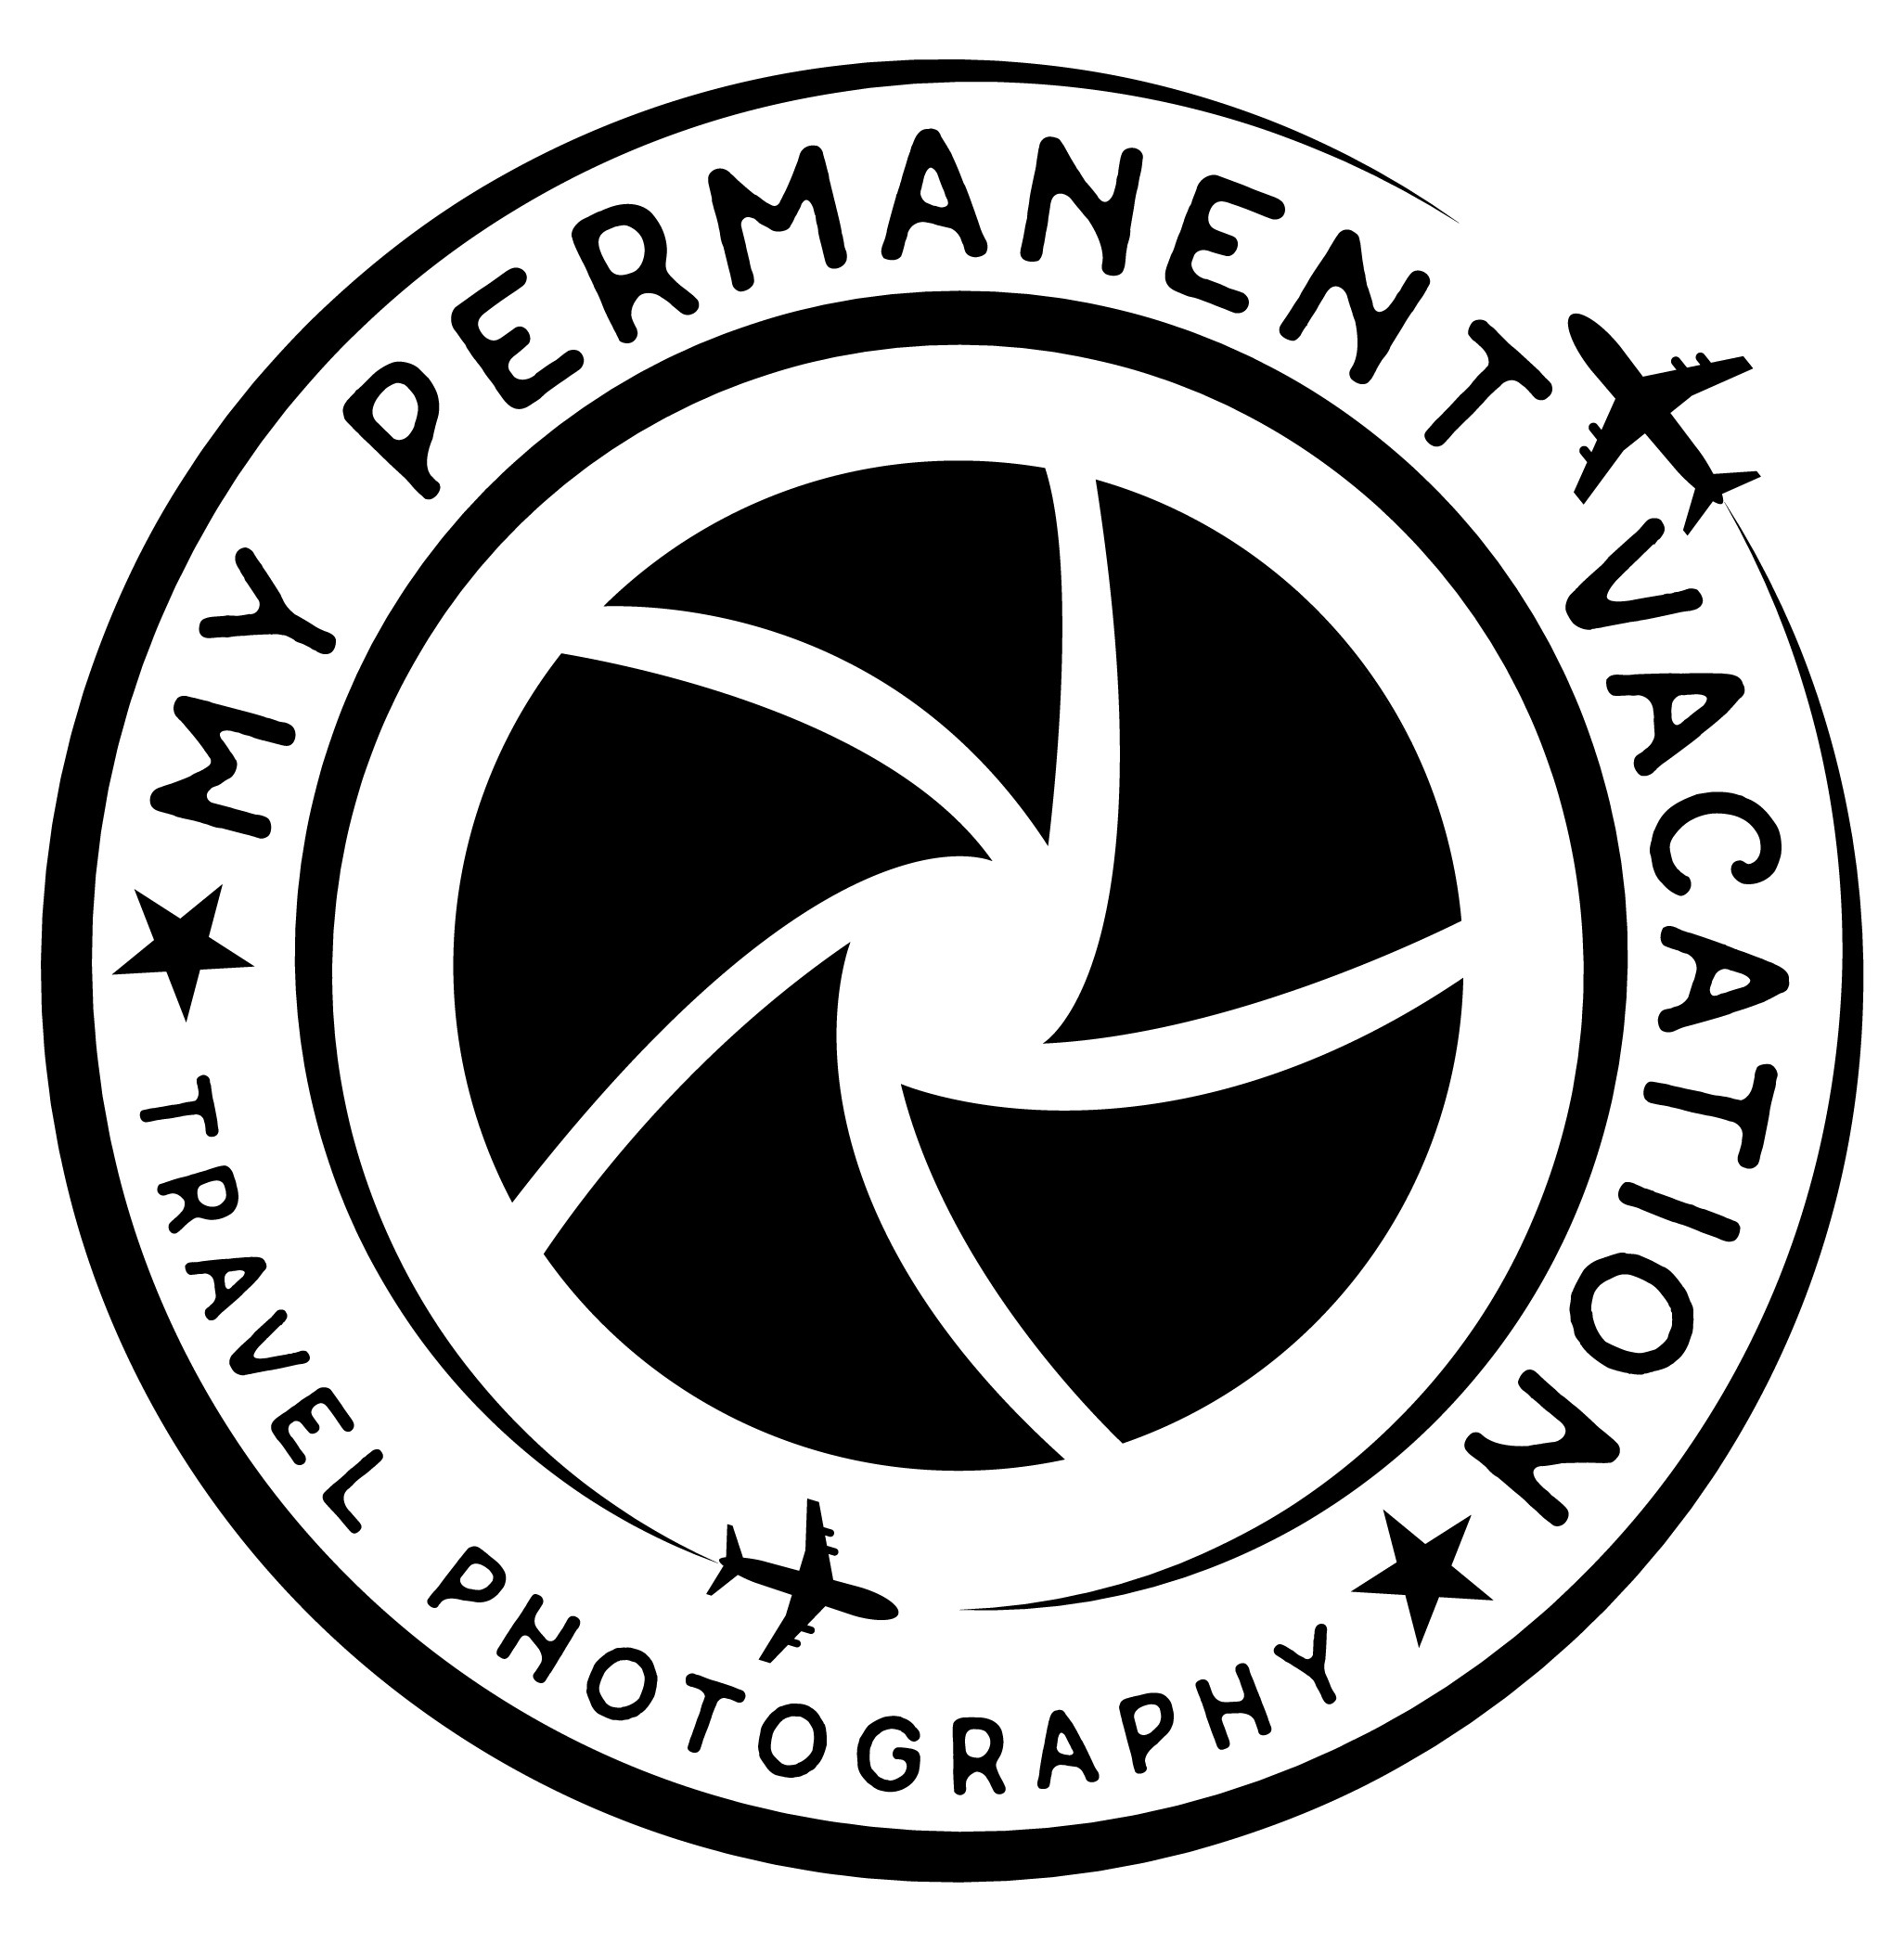 Non-Grunge Version of My Permanent Vacation Logo